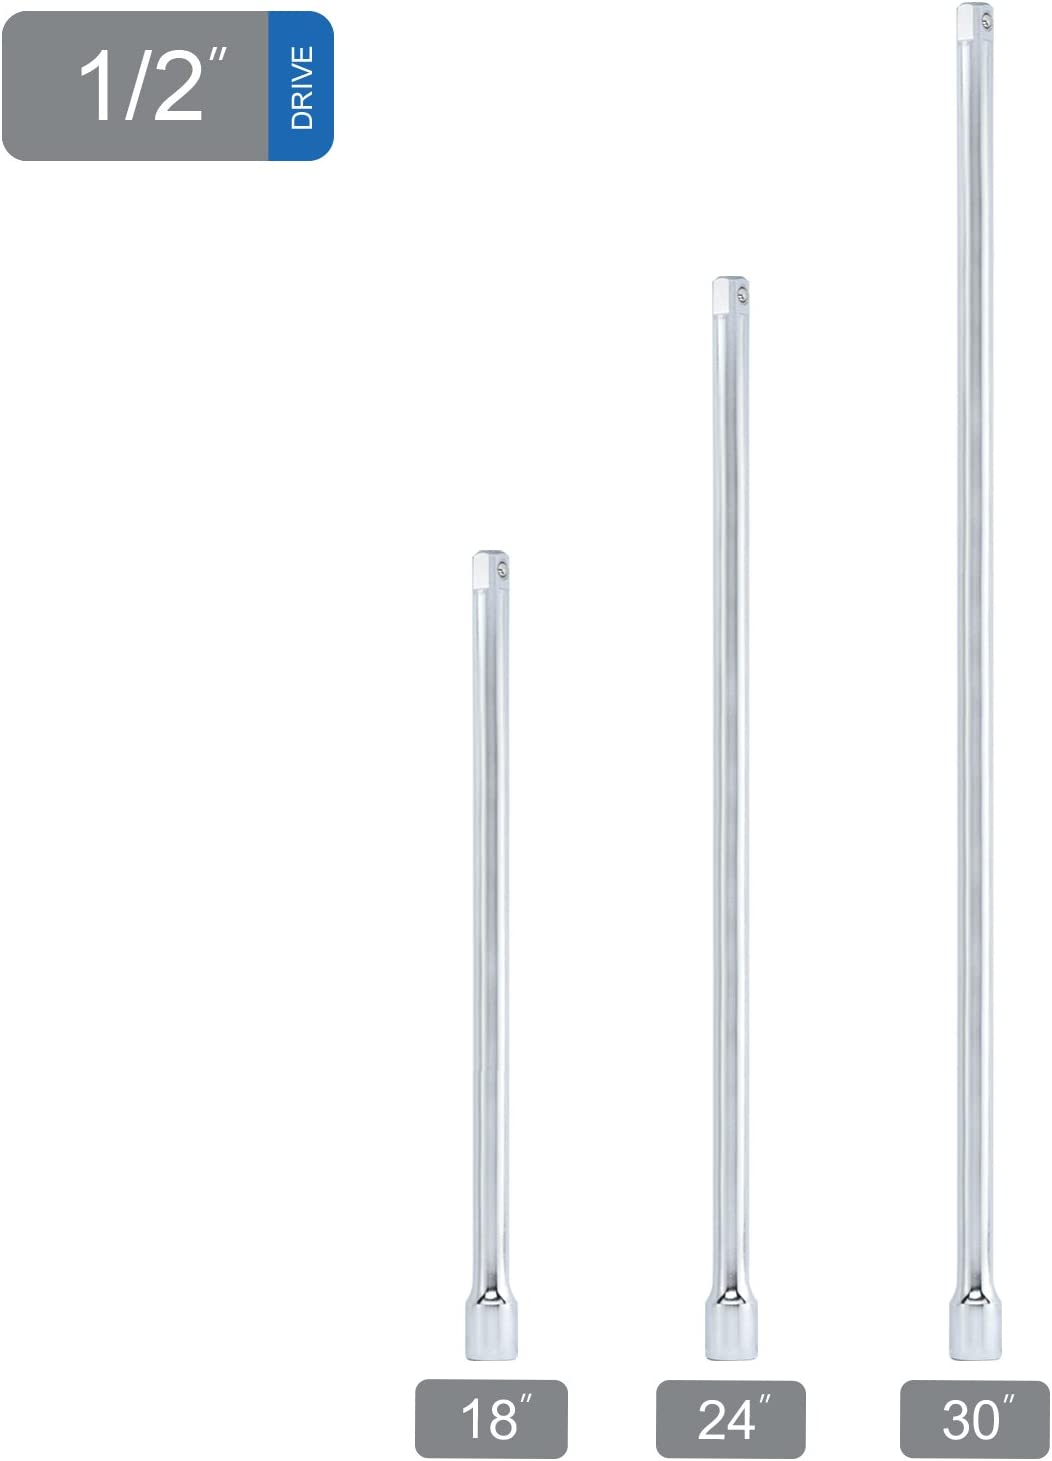 1//2 Inch Extension Sliding Bar Chrome Vanadium Steel Beautiful Appearance Easy to Use